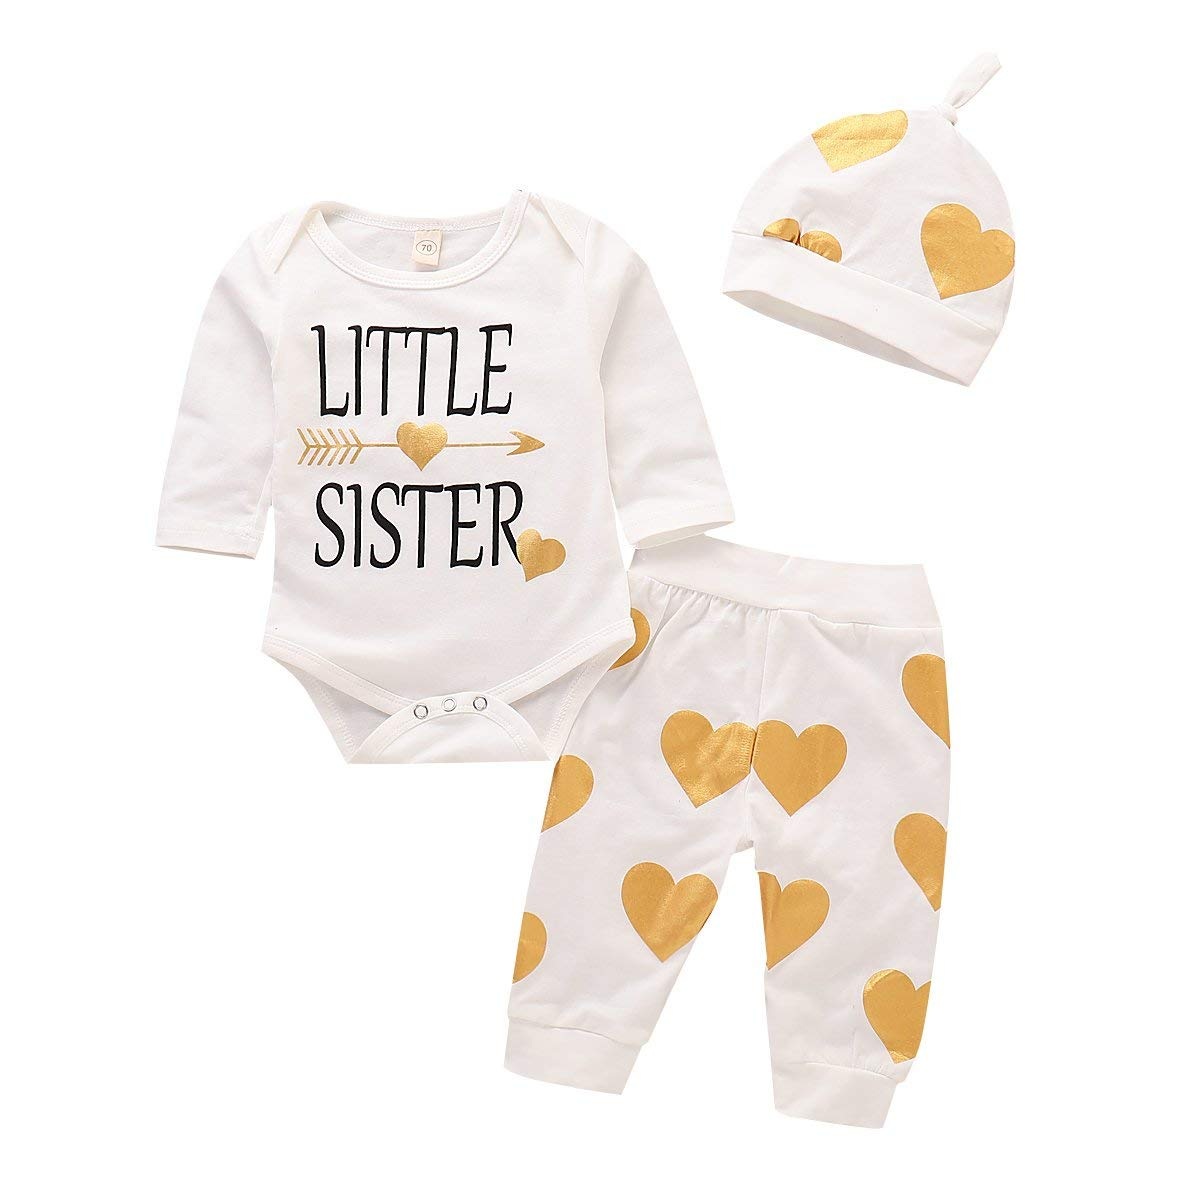 8a341e036 Get Quotations · Baby Girl Outfits Clothing Set Little Sister Romper  Bodysuit Gold Heart Pants Outfits with Hat 3PCS